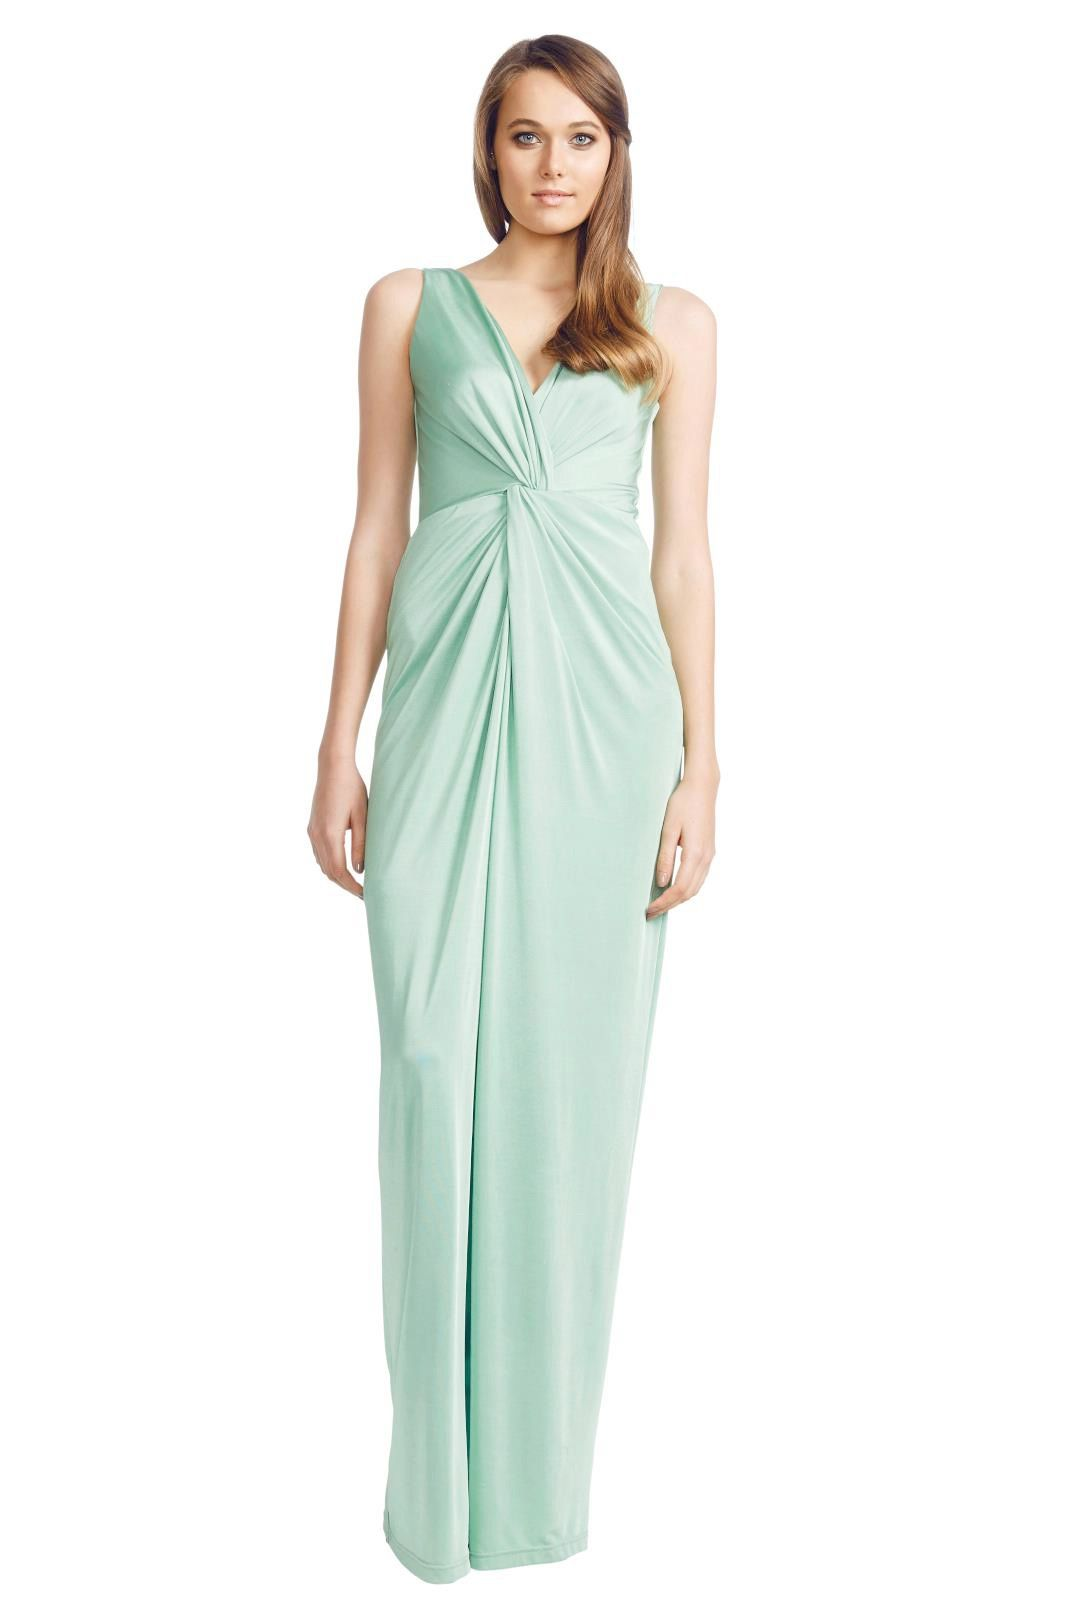 George - Apple Carulli Gown - Green - Front